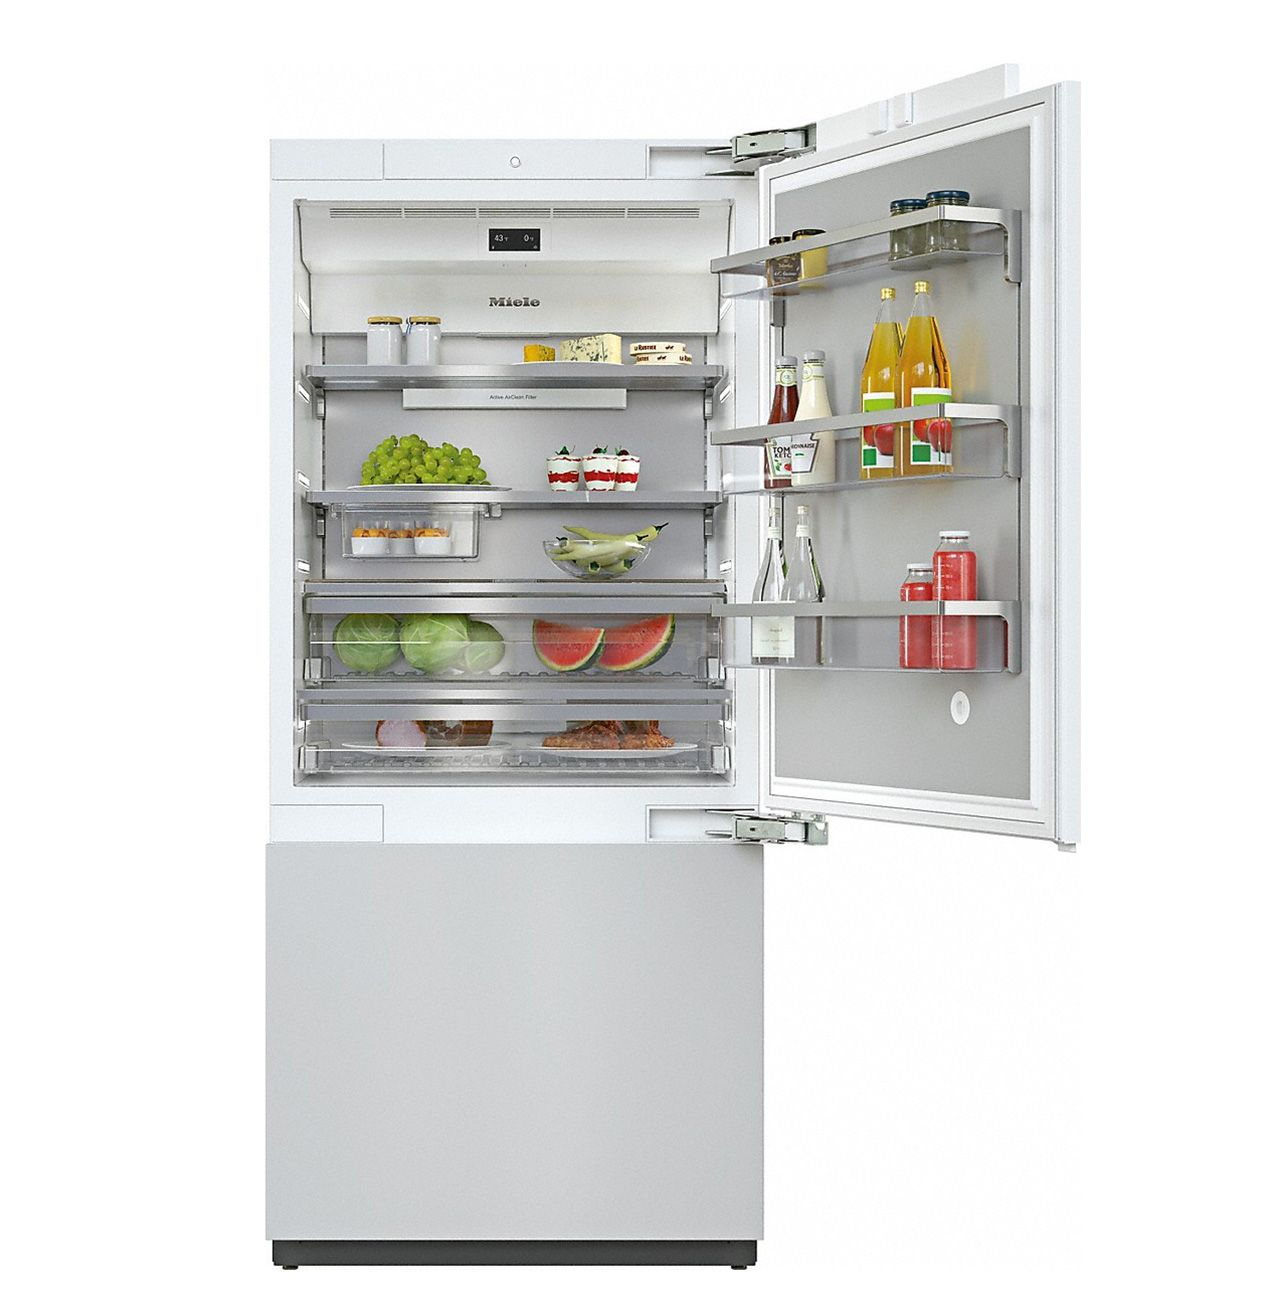 19.6 Cu. Ft. Total Capacity/ 14 Cu. Ft. Refrigerator/ 5.6 Cu. Ft.Freezer/ DynaCool/ MasterSensor Controls/ Push2Open/ Pull2Open/ Master Fresh Storage Drawers/ Drop And Lock Door Bins/ FullView Extendable Drawers/ BrilliantLight/ SuperCool/ SuperFreeze/ NoFrost/ Built-In Ice Maker/ WifiConn@ct/ Sabbath Mode/ Right Hinge/ Custom Panels Required/ Panel Ready Finish